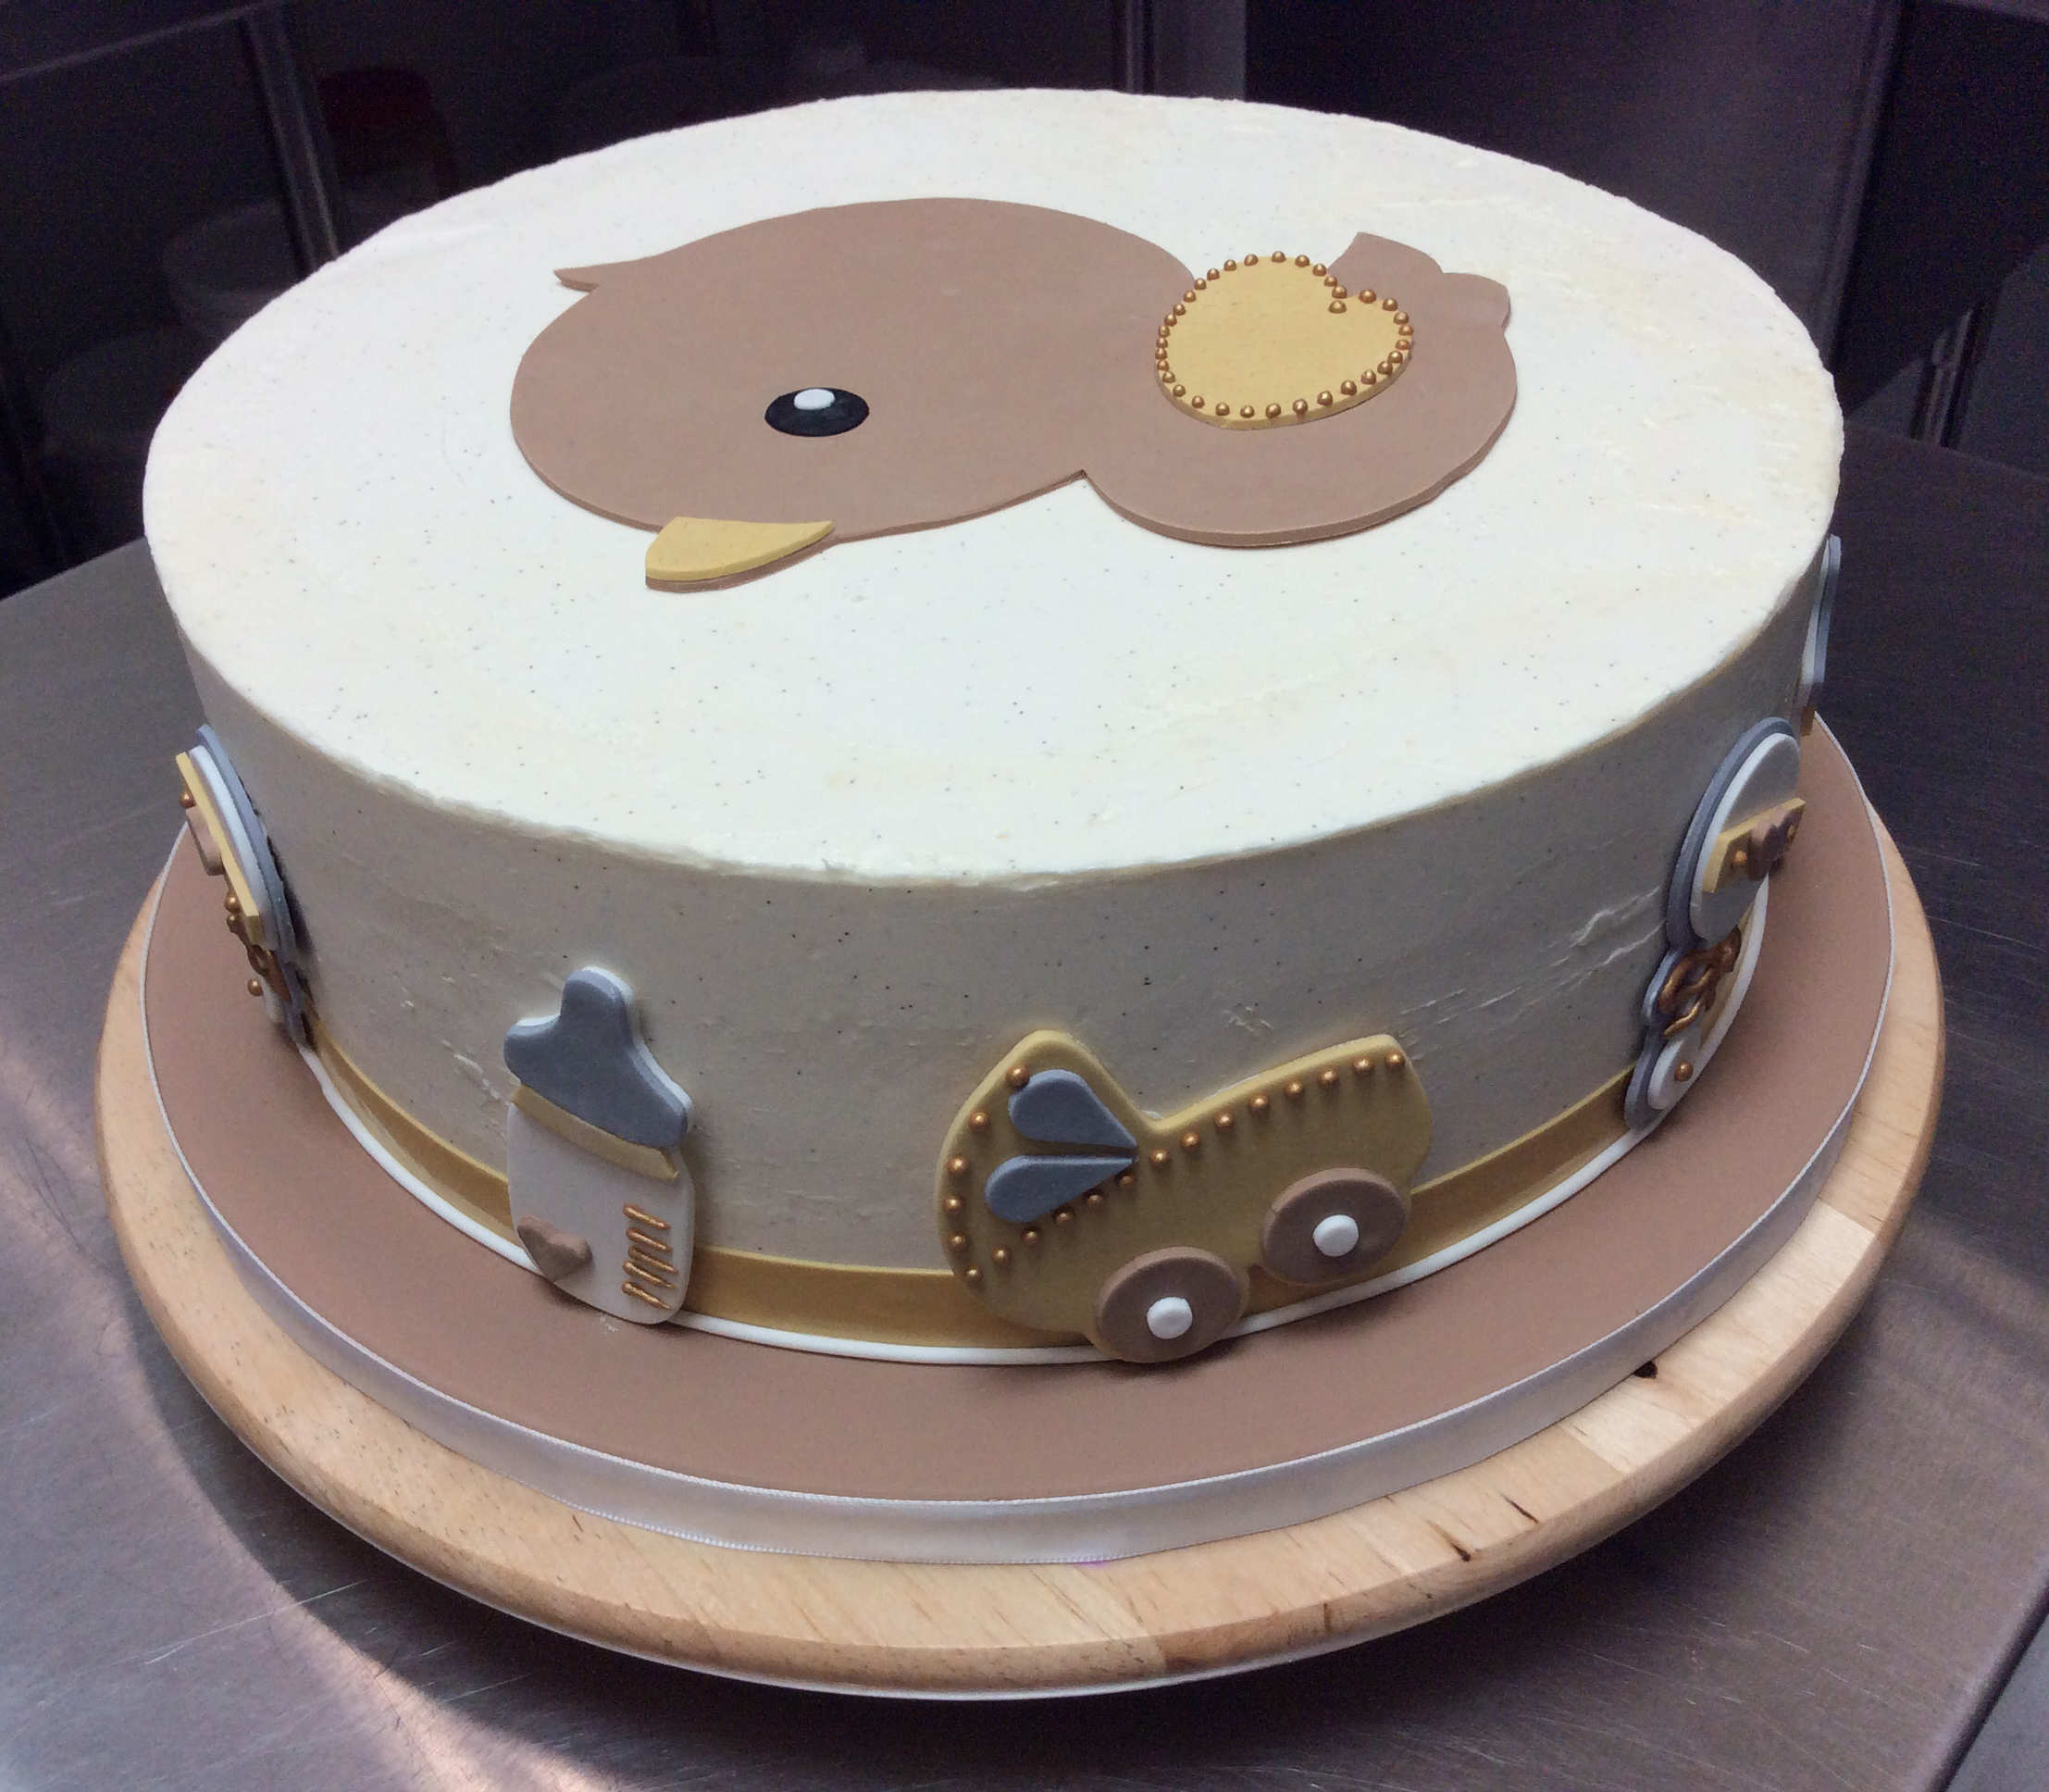 Yummy Cake Art : Custom cakes by Delicious Arts Los Angeles 2D Baby Duck Cake